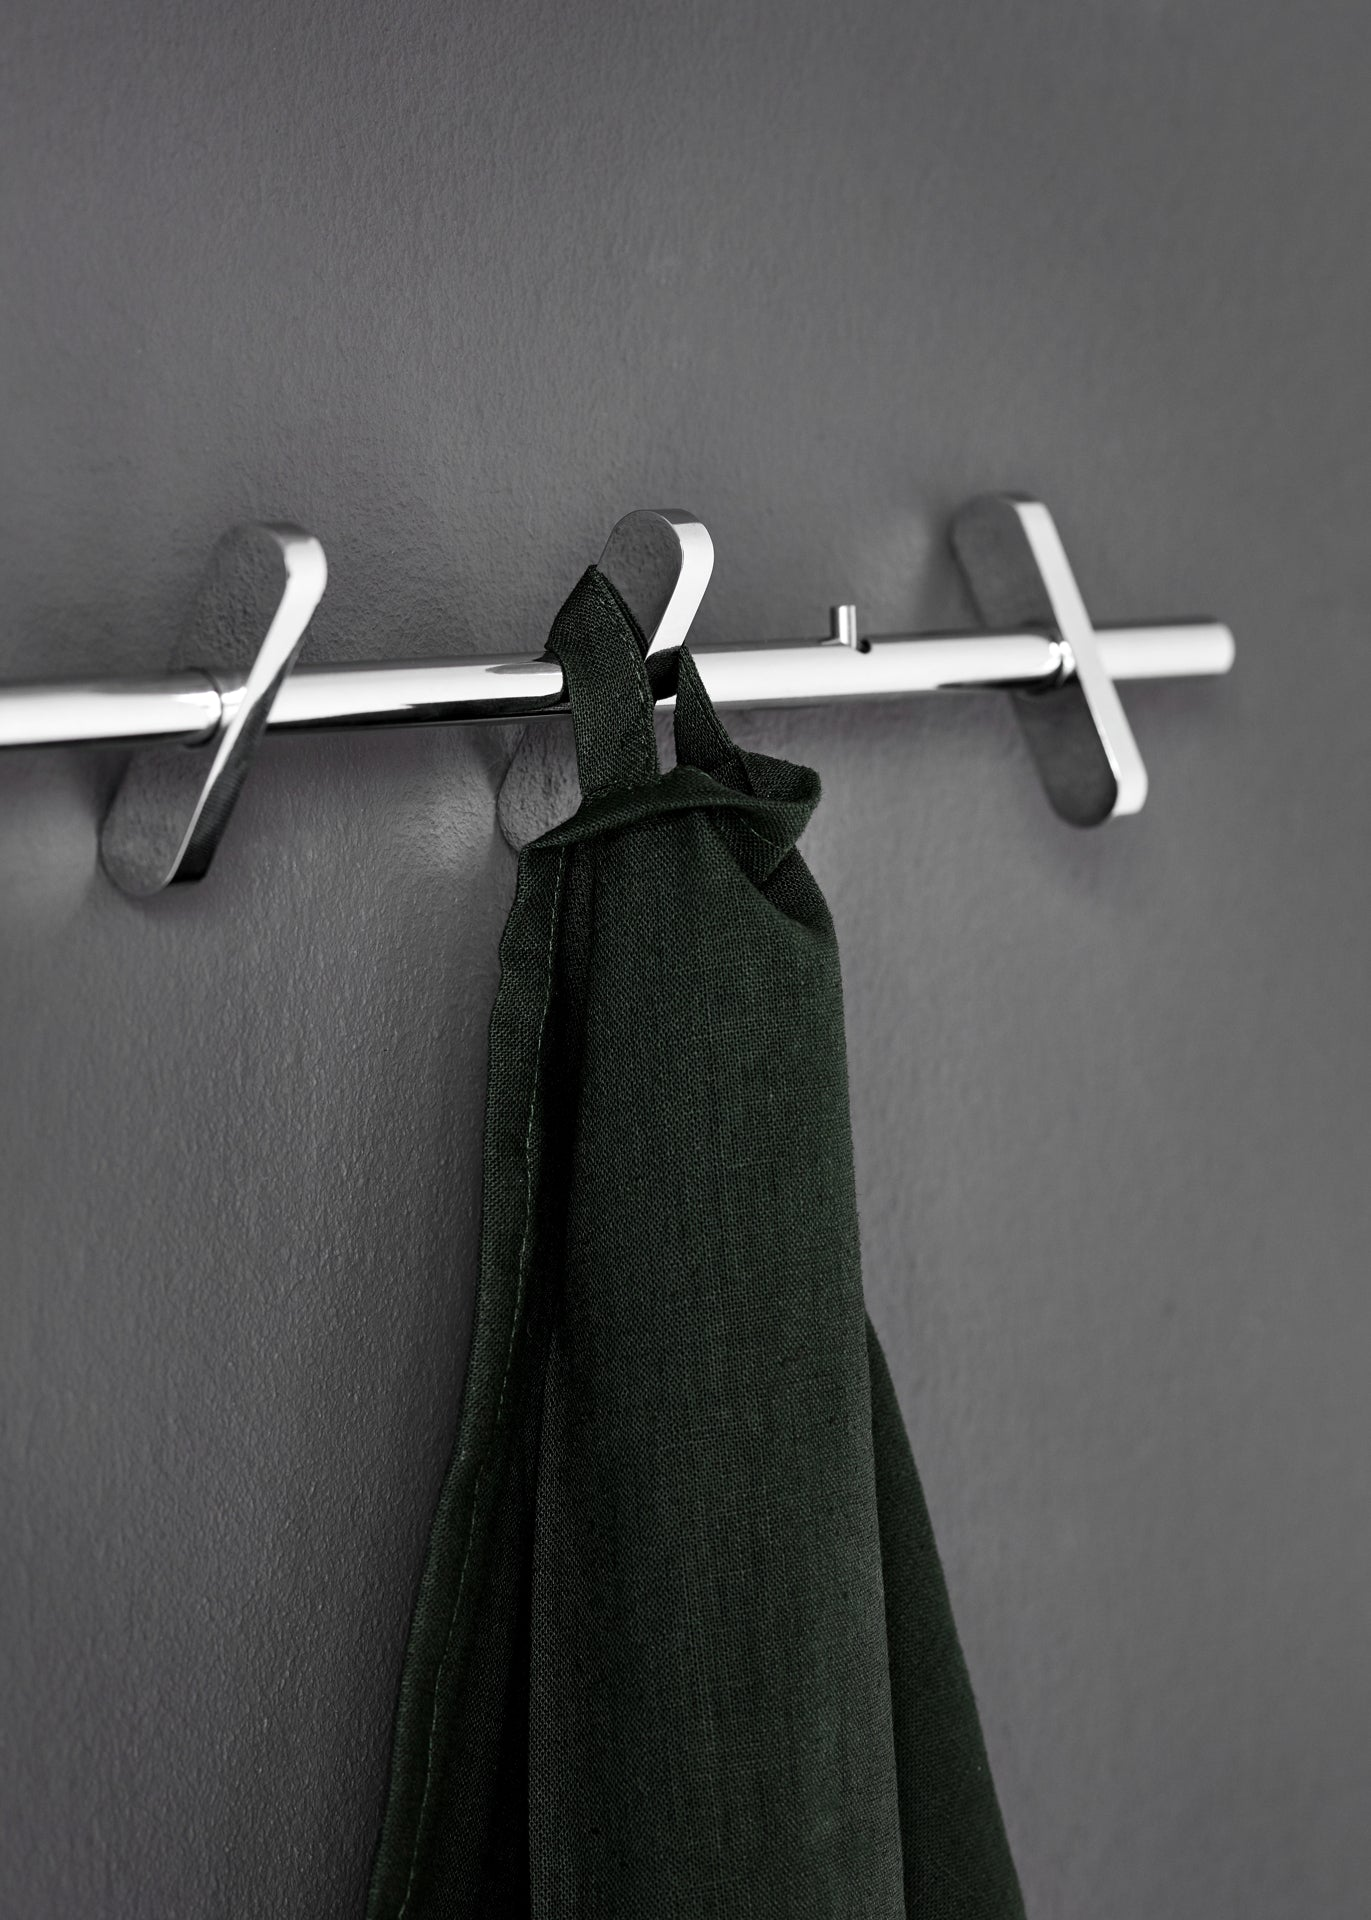 Coat Rack — 40cm-Moebe-black-Average